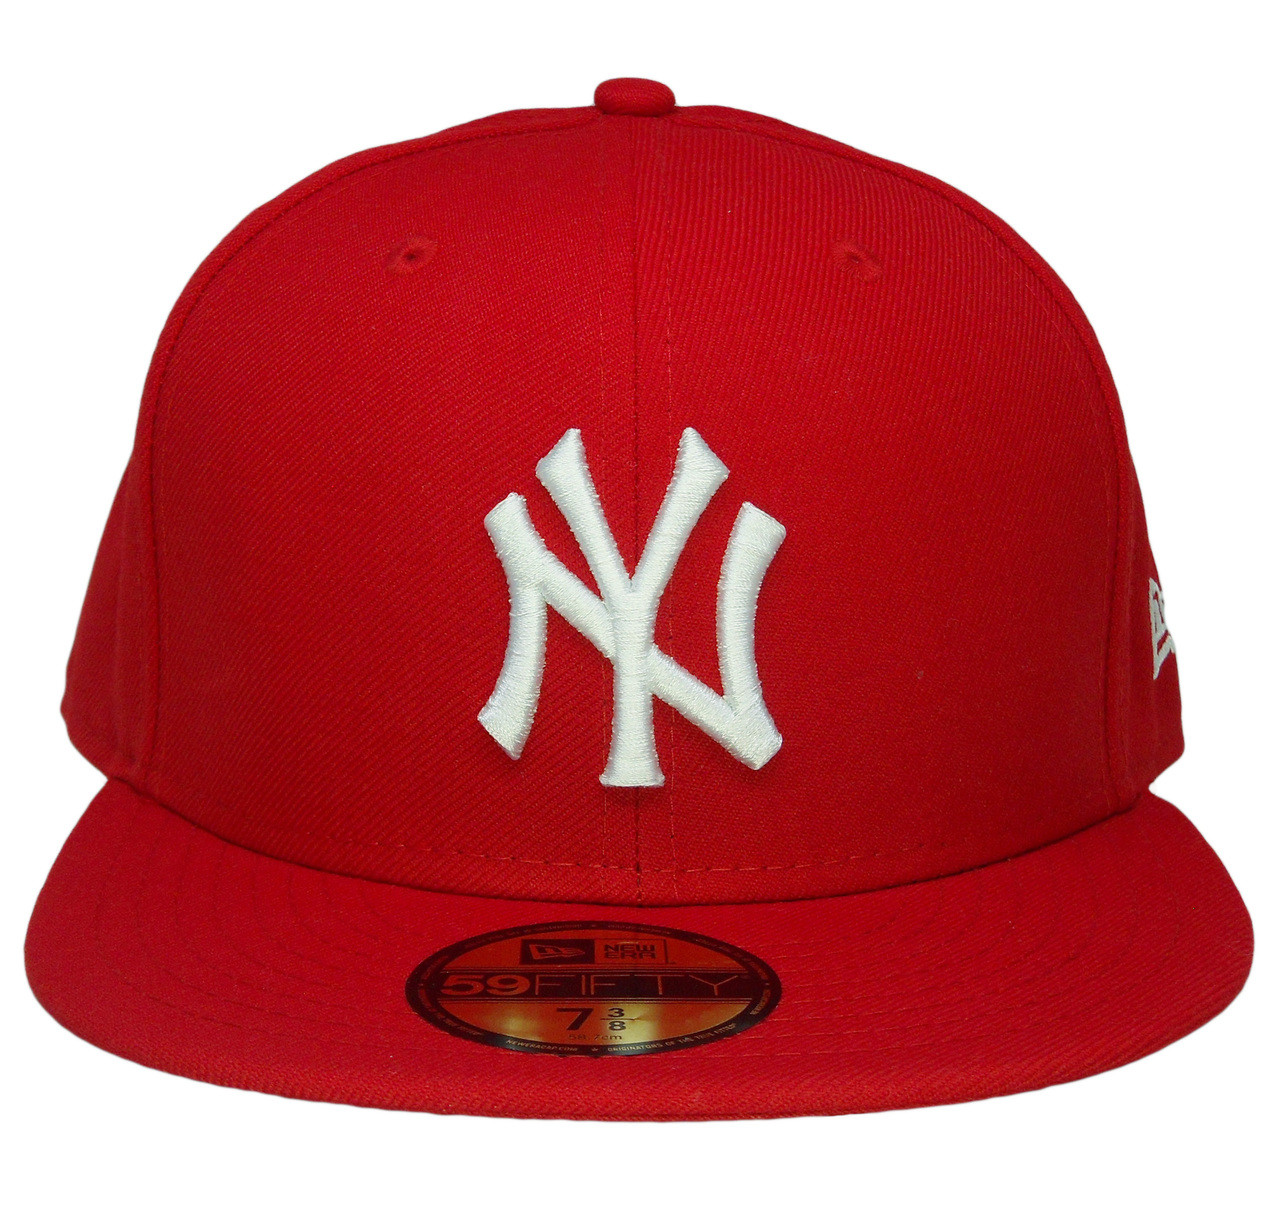 c414aeaf368 New York Yankees New Era 59Fifty Basic Fitted Hat - Red